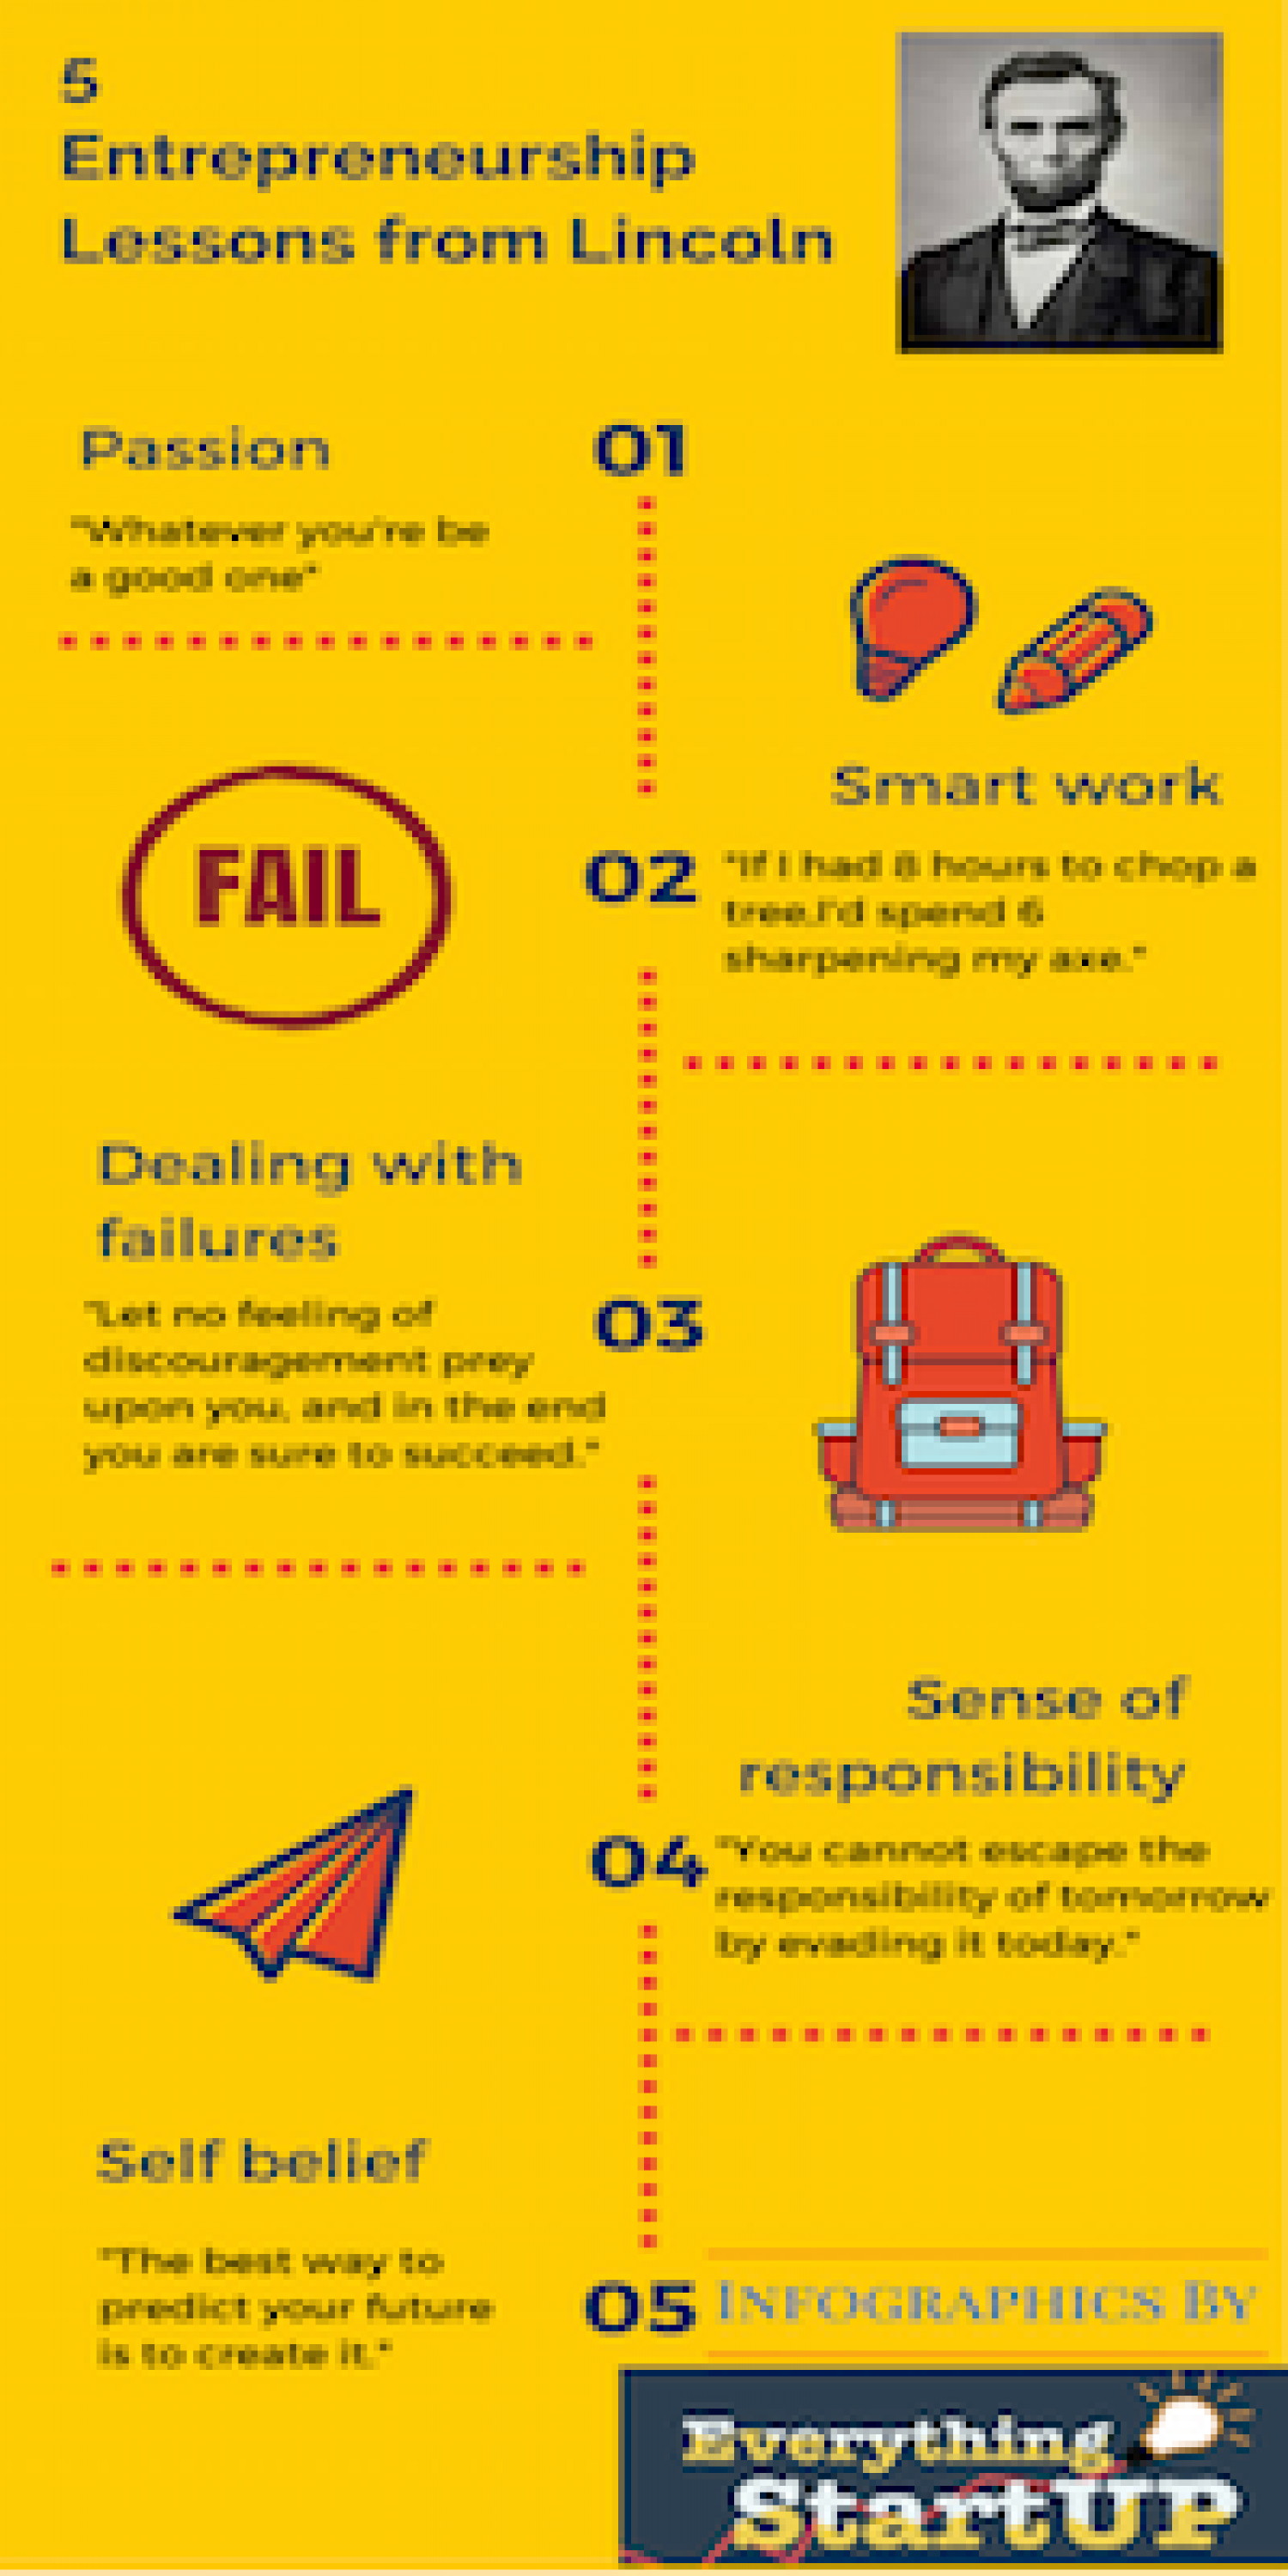 5 entrepreneurship lessons from Lincoln Infographic